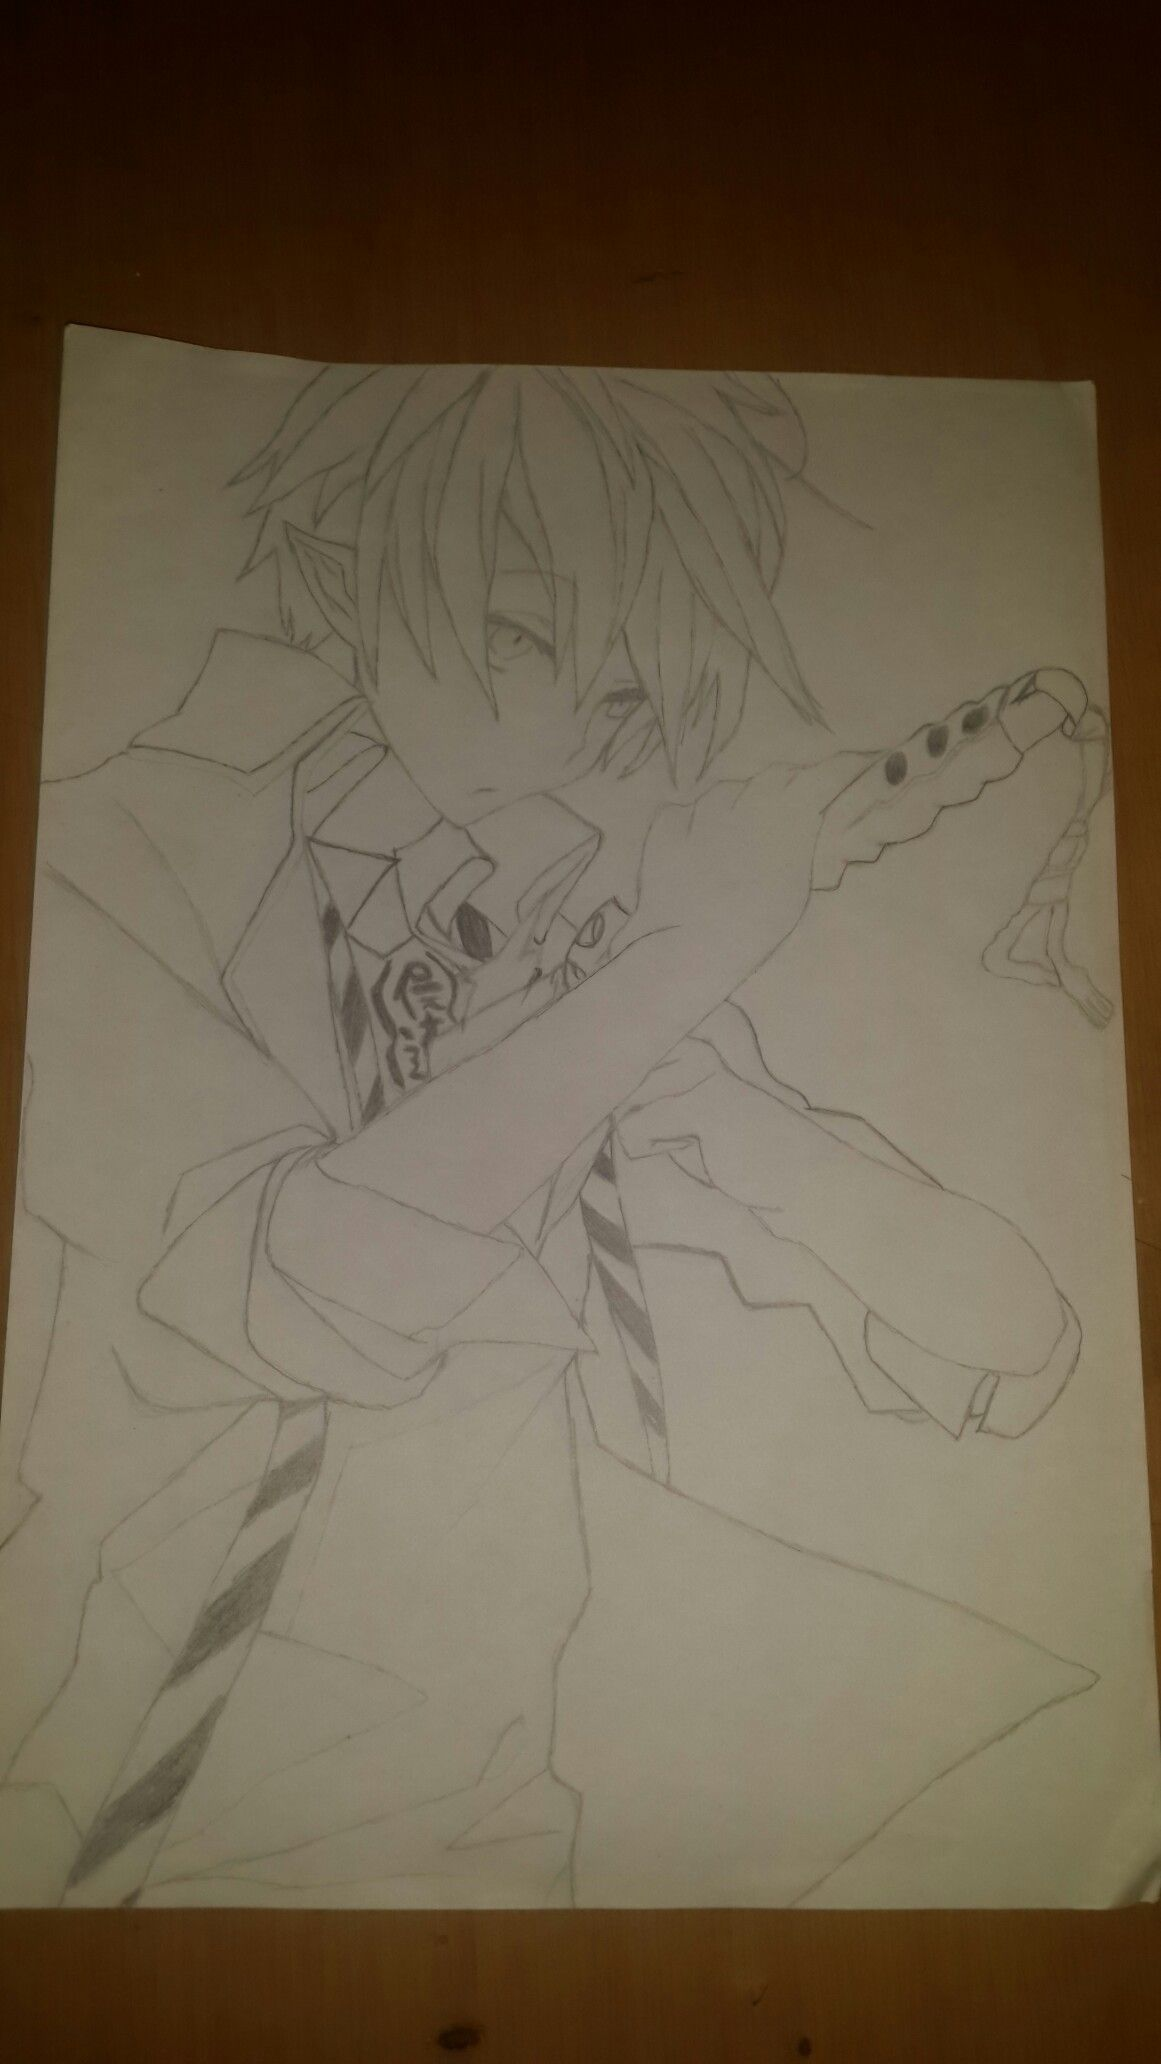 Hey, I tried to draw Run Okumura and I just wanted to know if you think I should color or not?